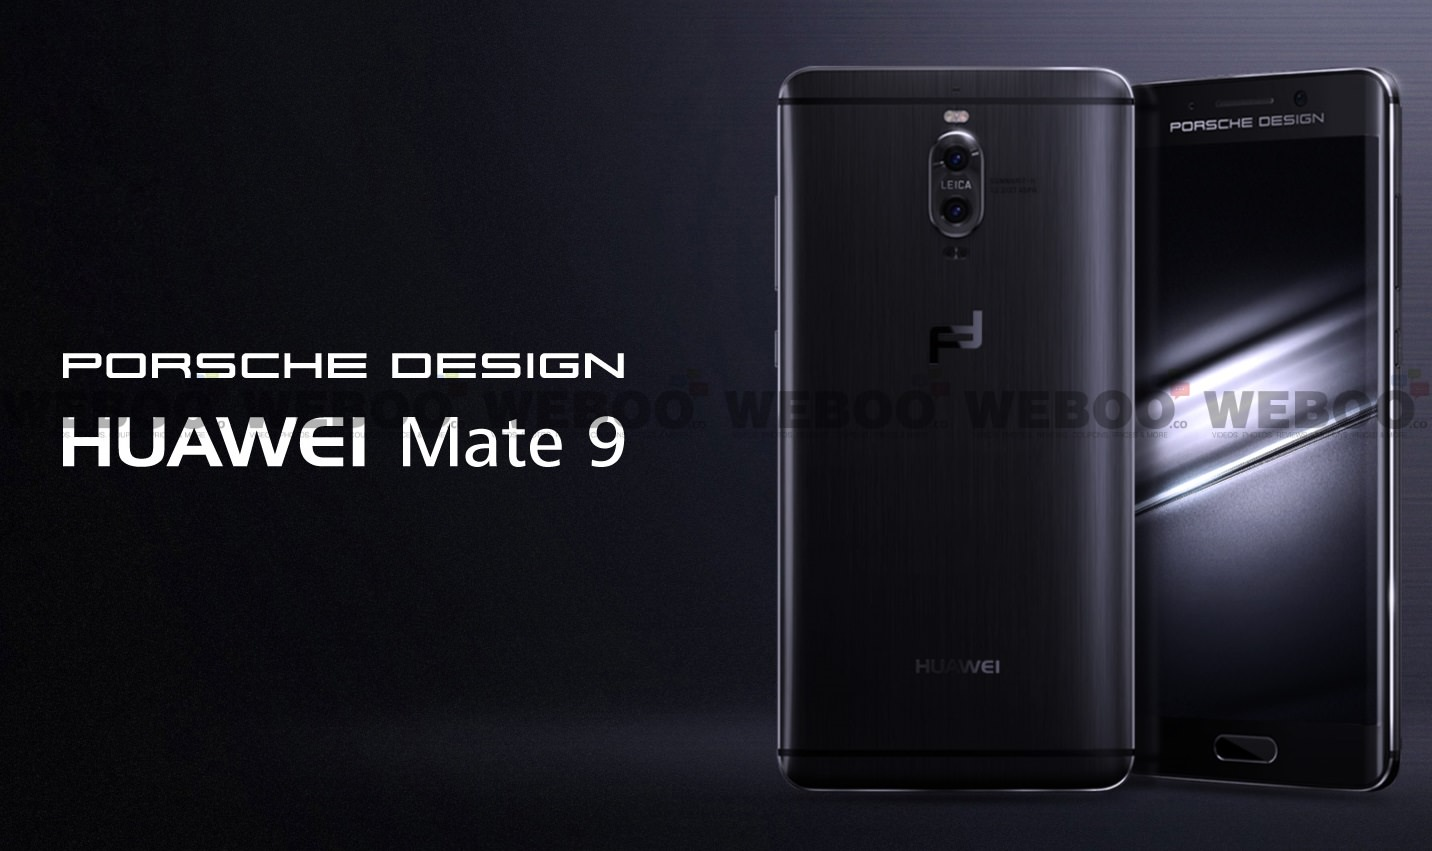 huawei-mate-9-porsche-design-weboo-co